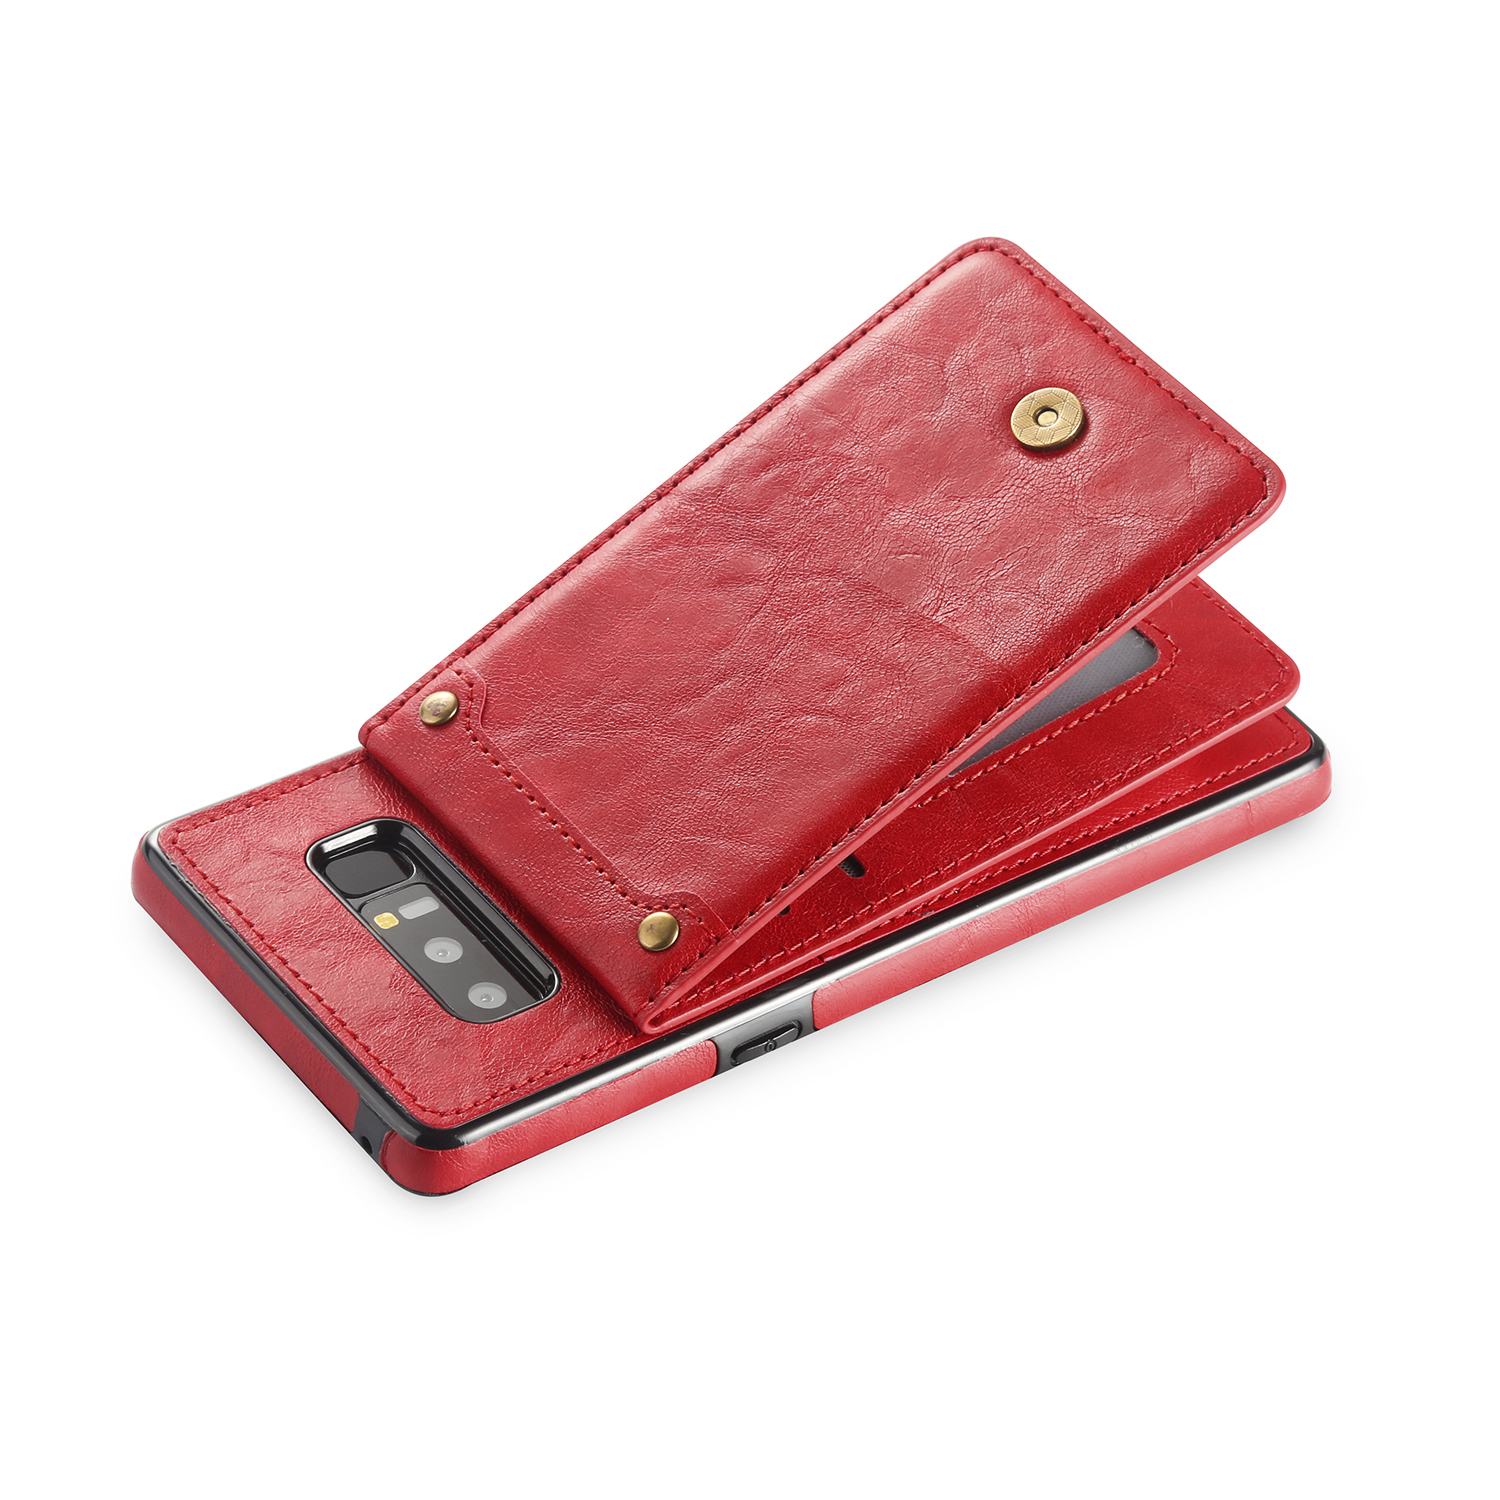 Bakeey Detachable Card Slot Stand Leather Case for Samsung Galaxy Note 8